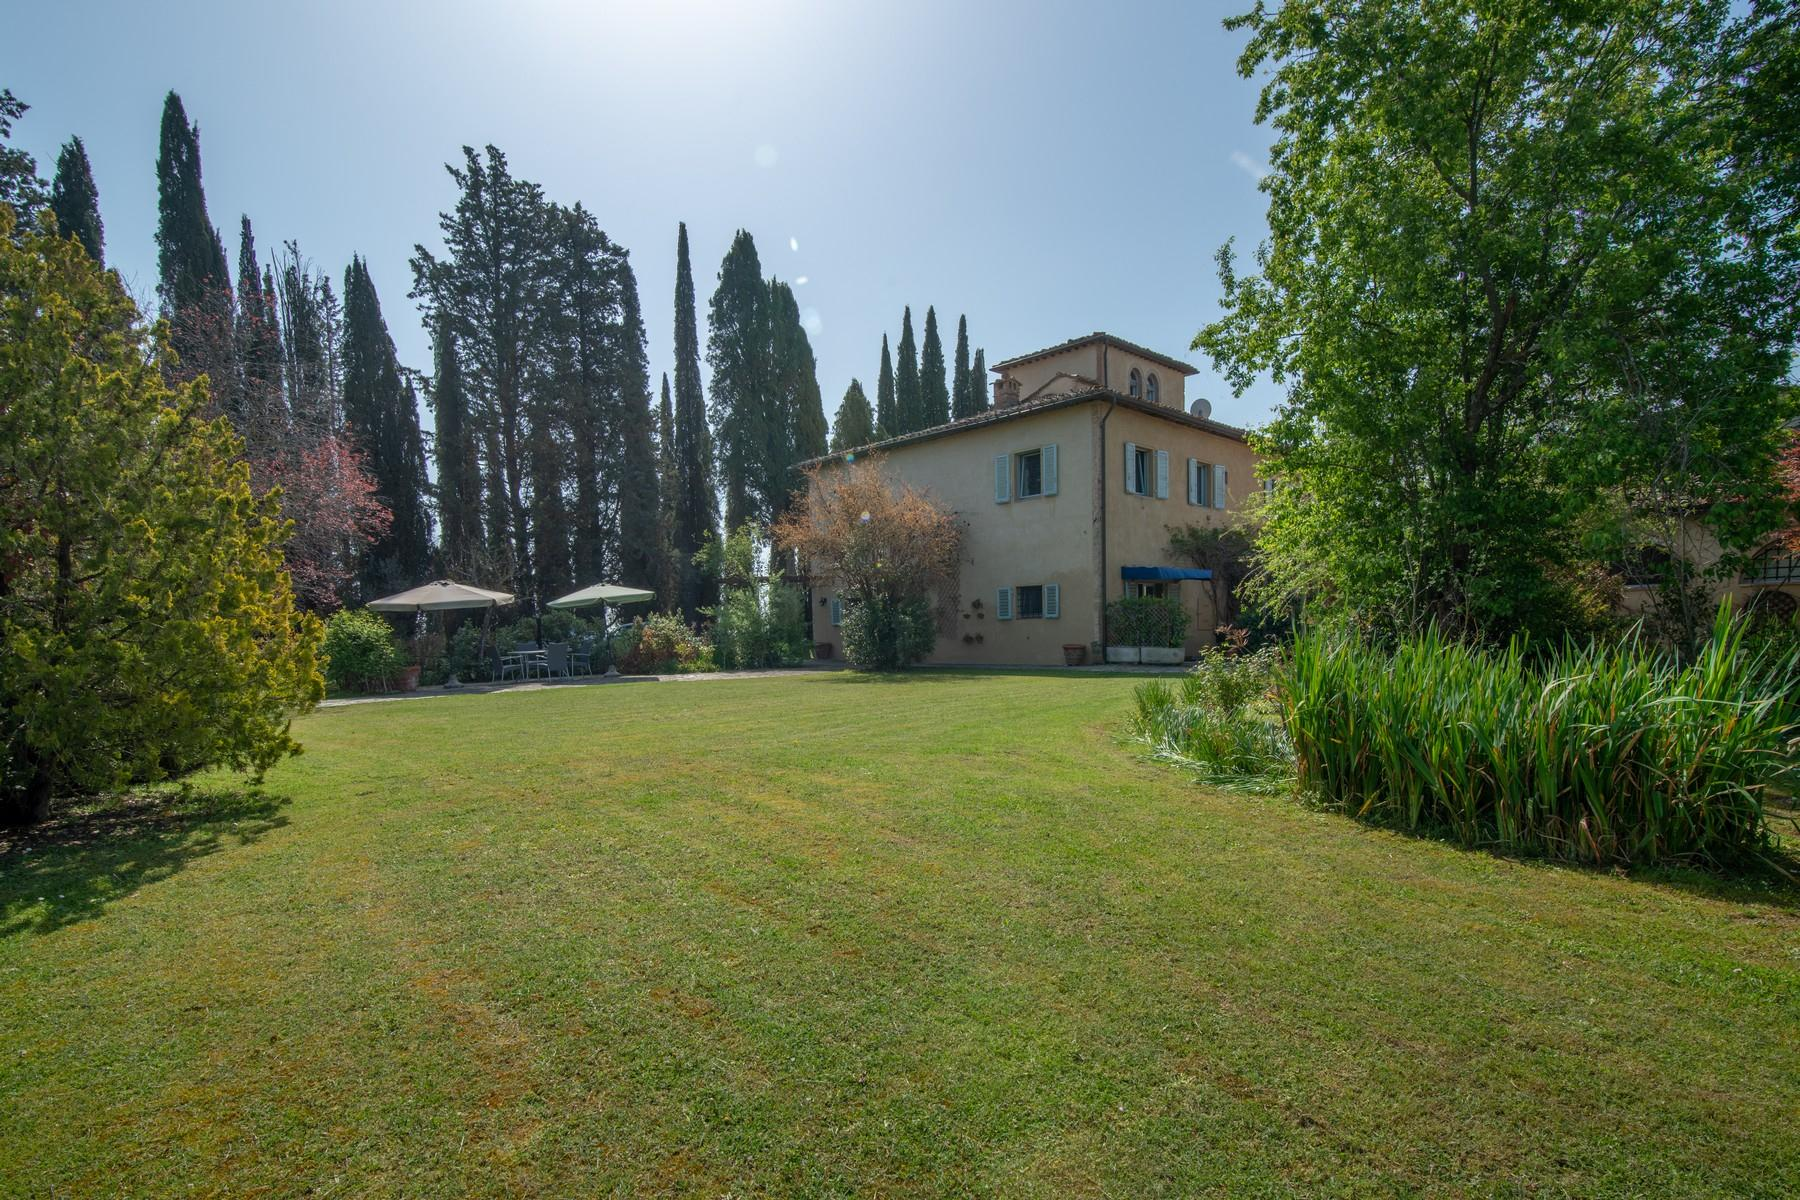 Remarkable Country house B&B with pool near San Gimignano - 4